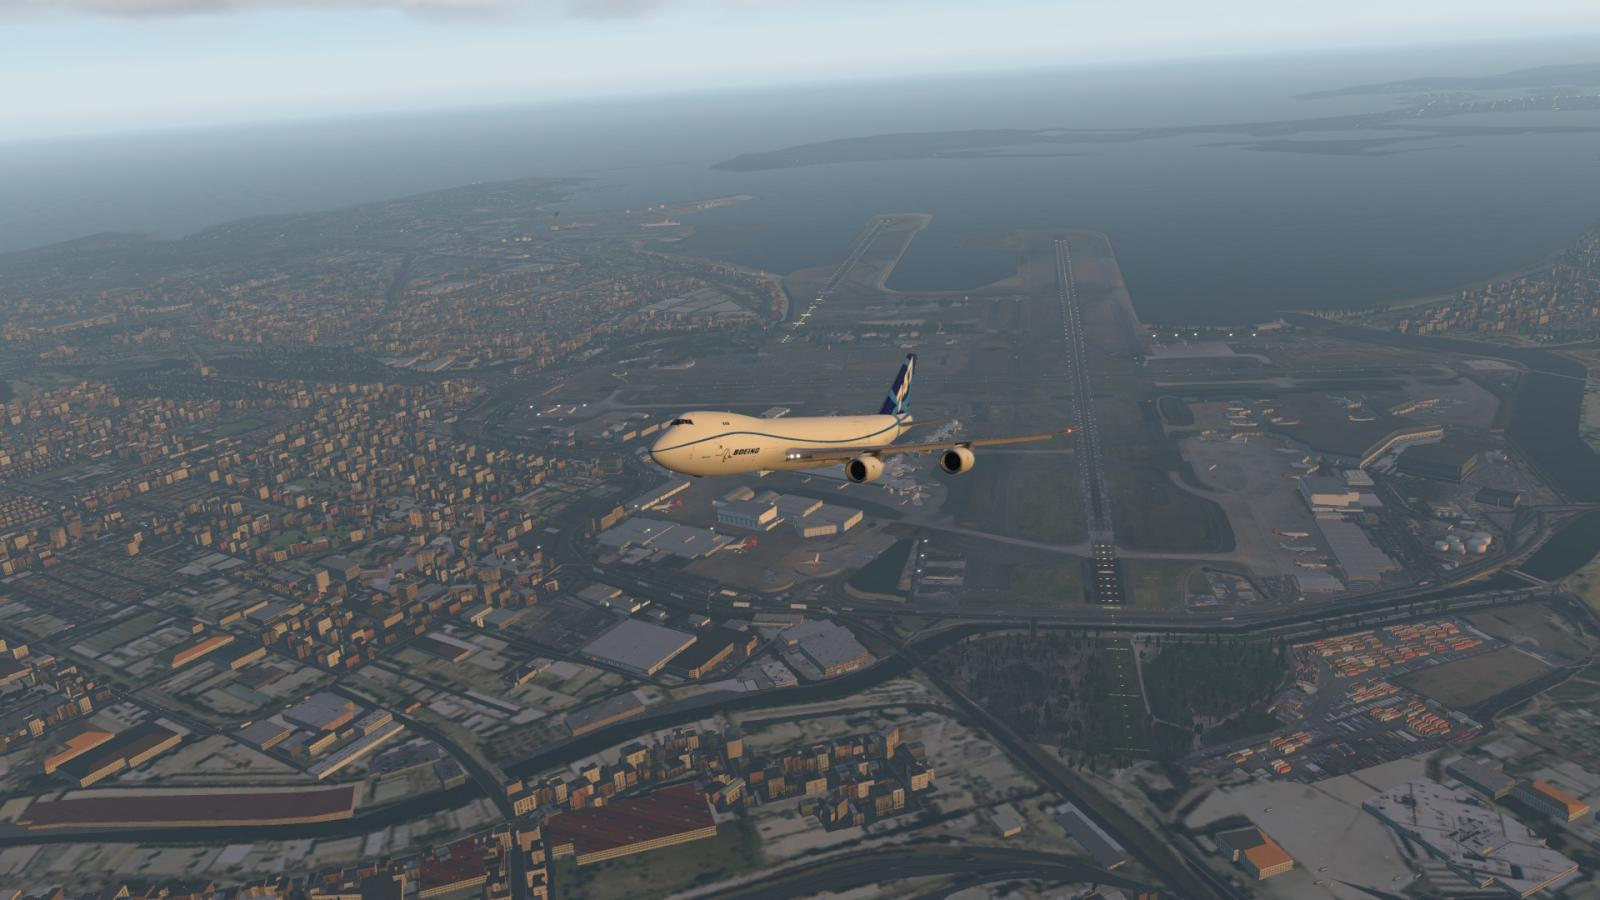 Sydney departure - ScreenShots - X-Plane Org Forum